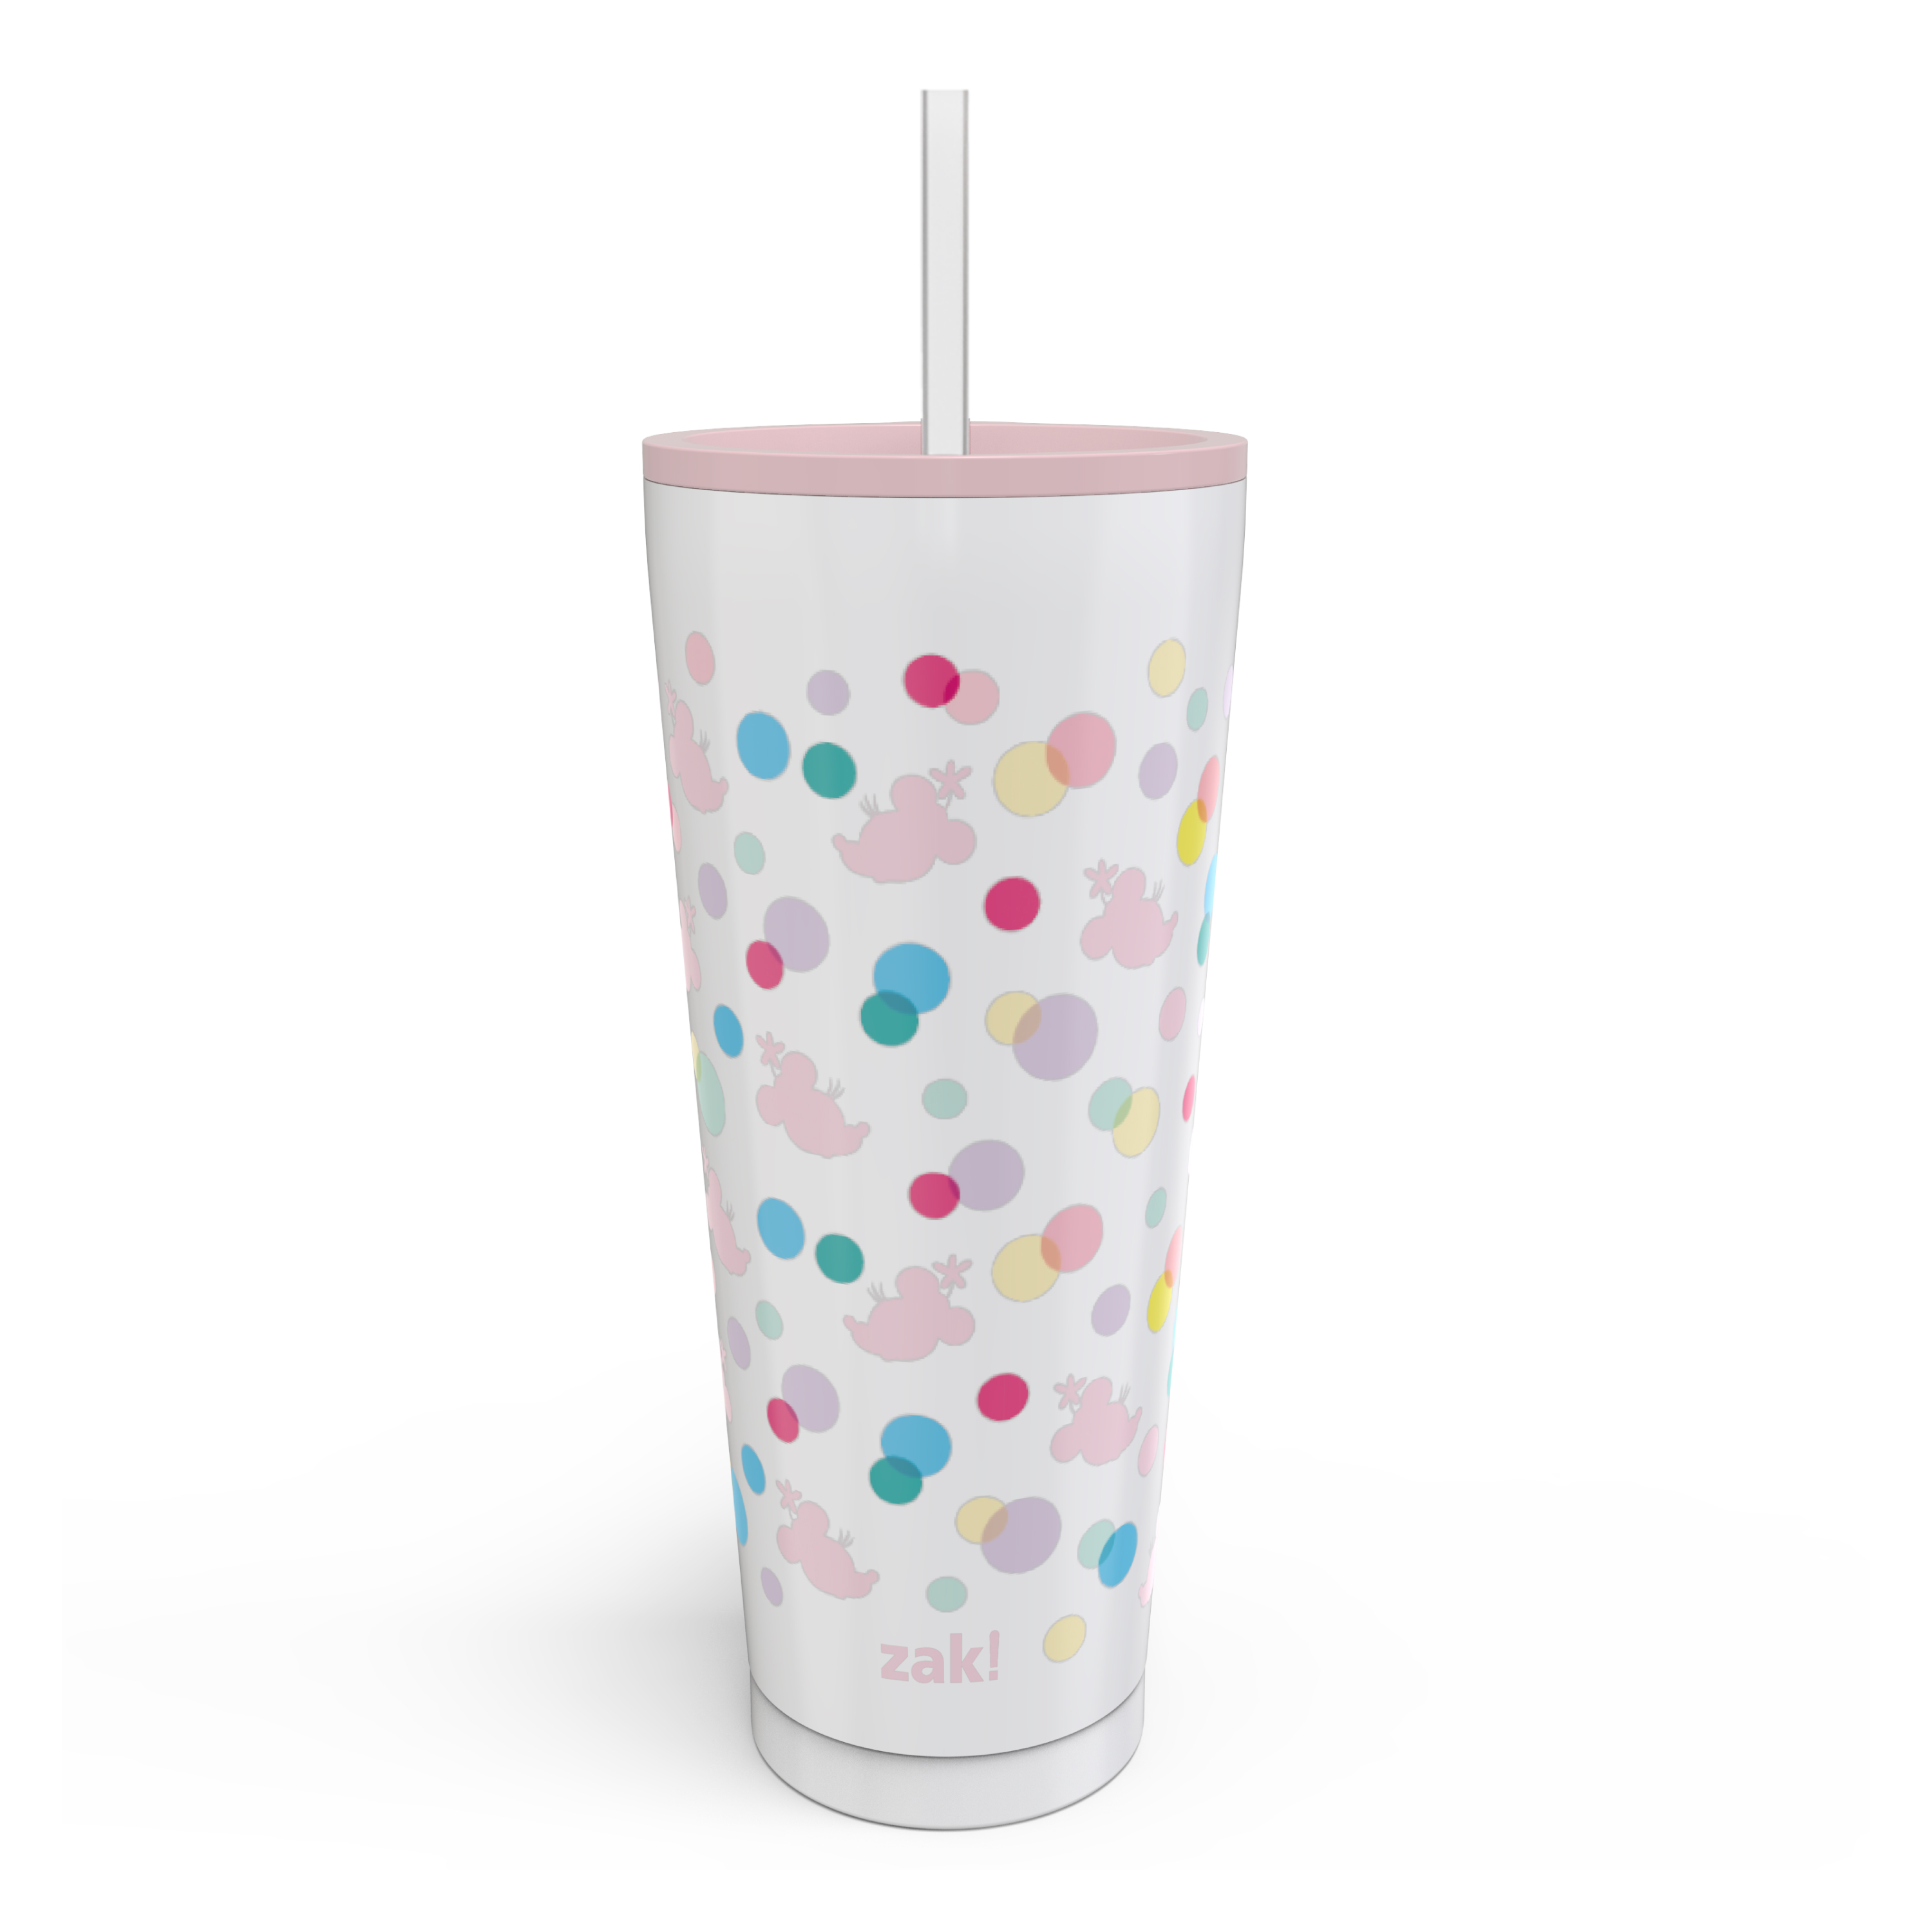 Disney 25 ounce Reusable Water Bottle, Minnie Mouse Polka Dots slideshow image 1